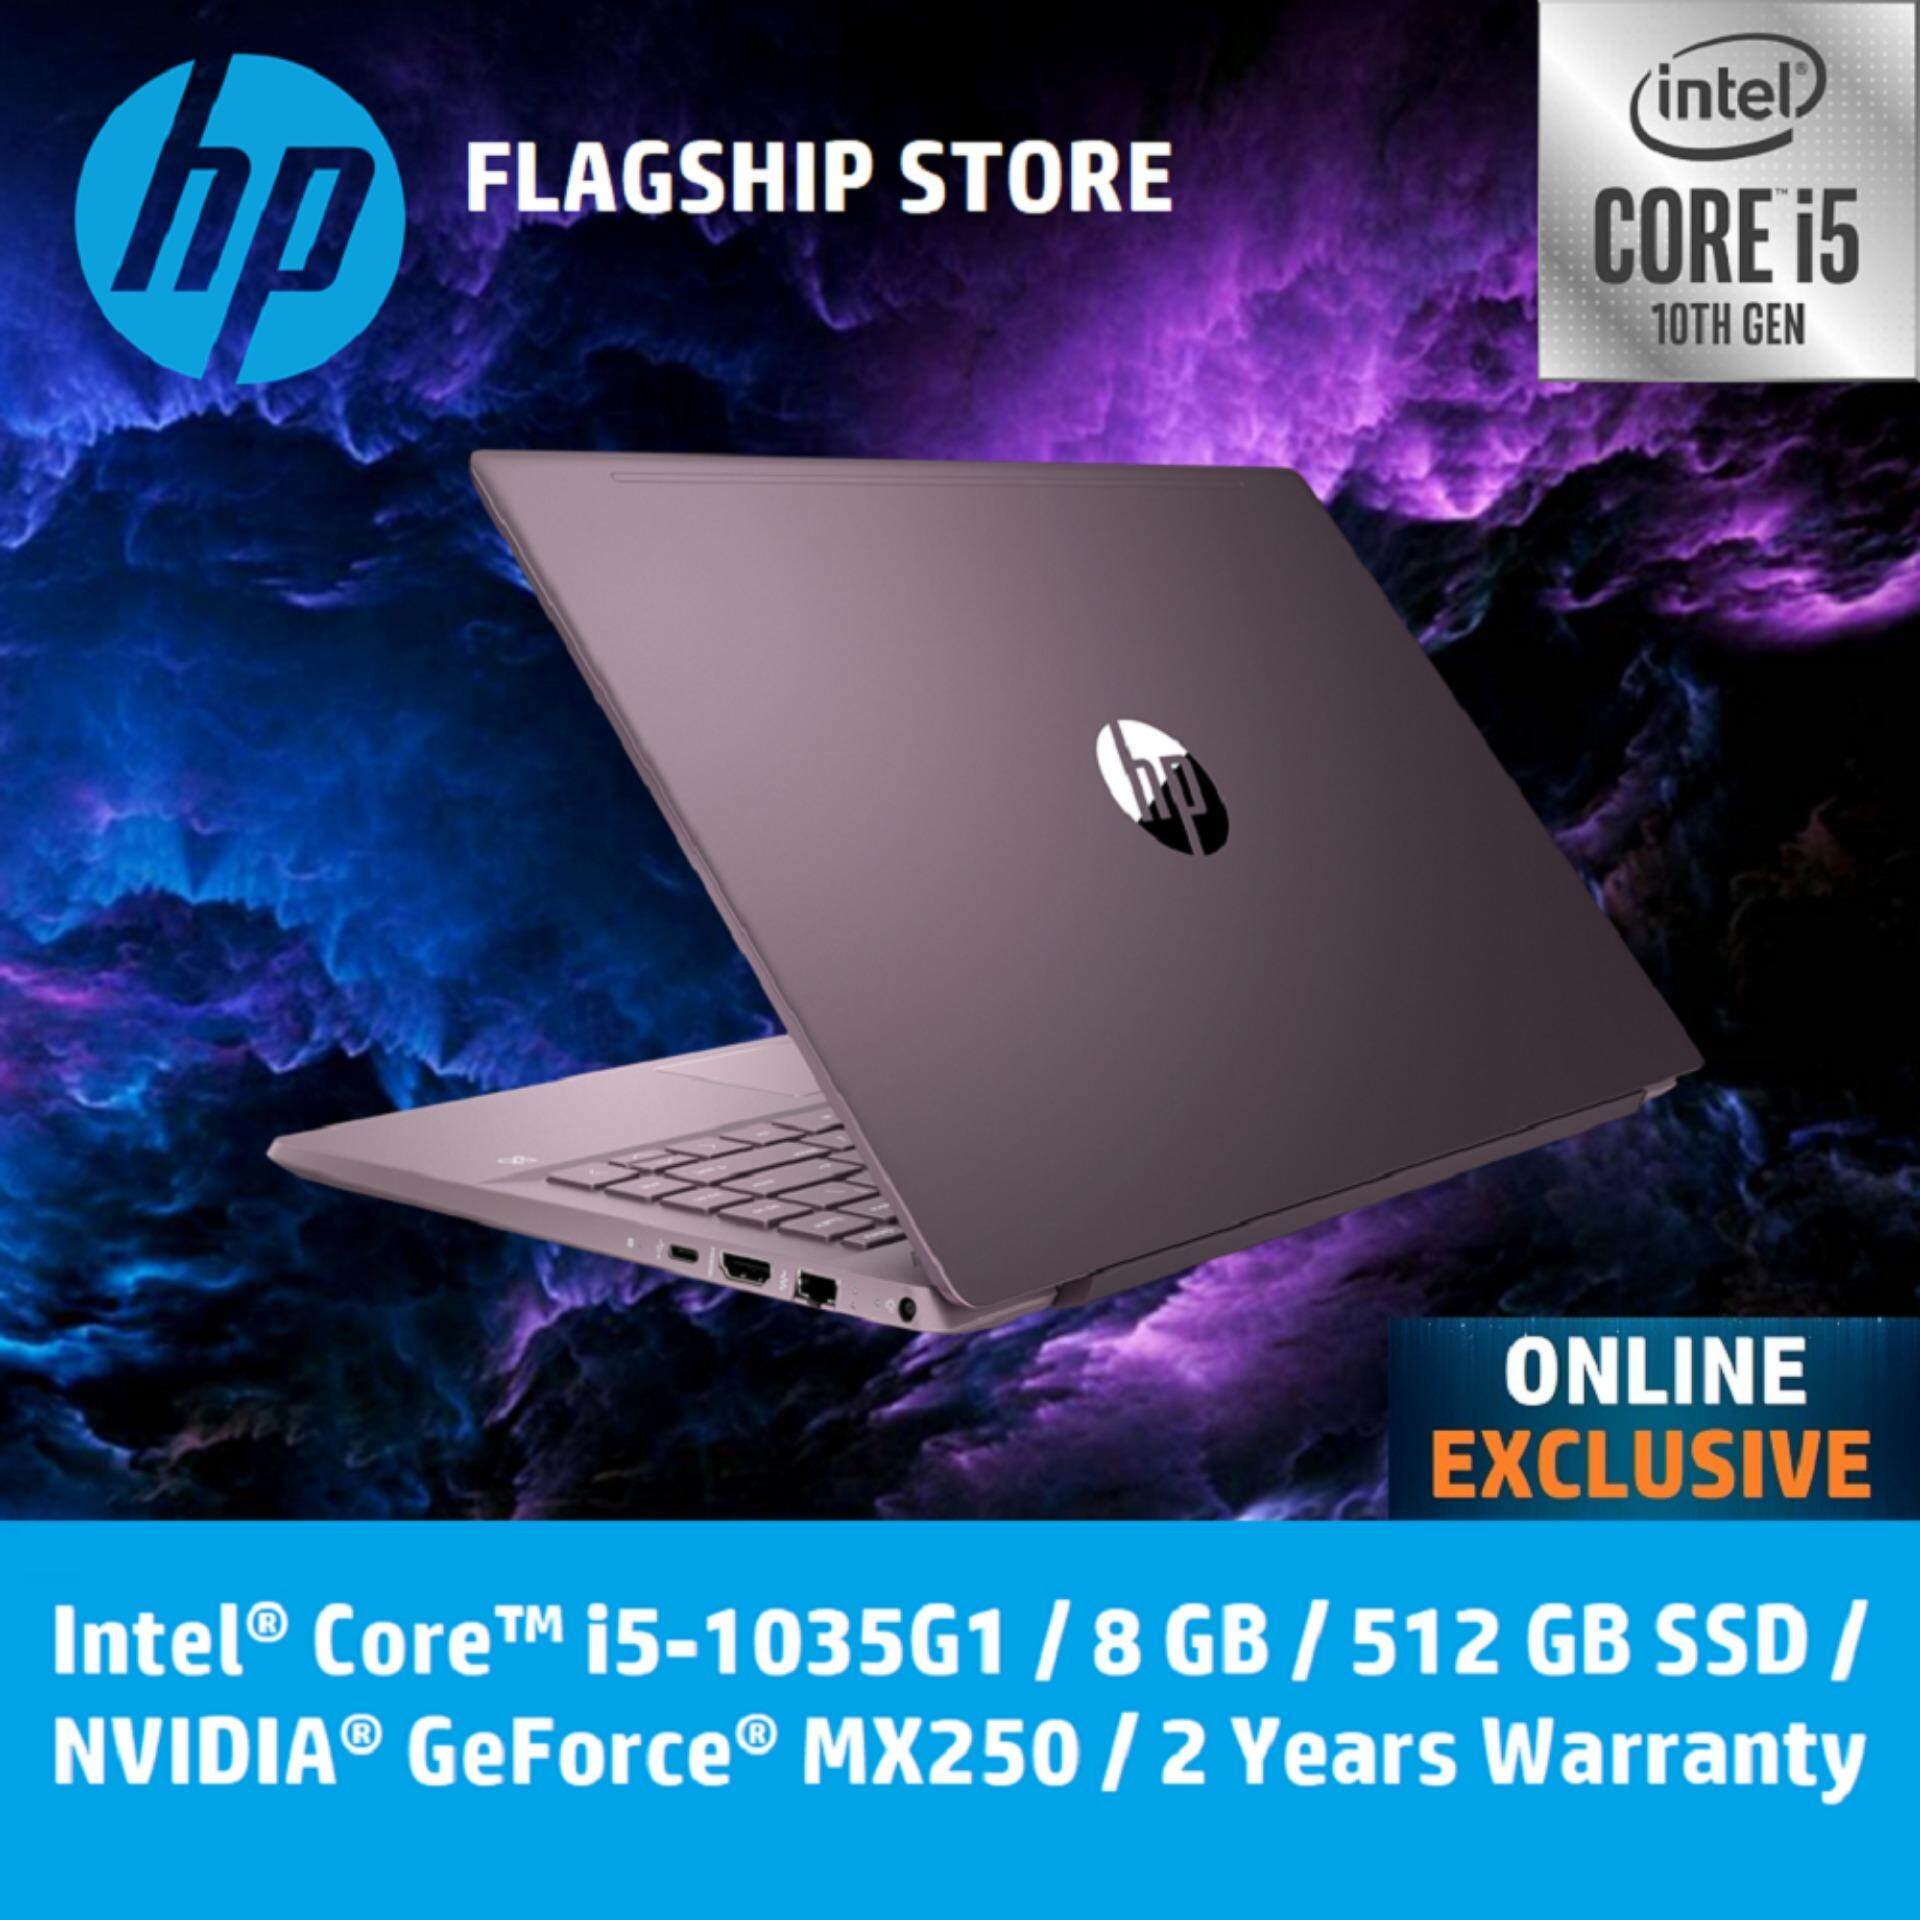 HP Laptop Pavilion - 14-ce3052tx - Intel 10th Gen Processor **ONLINE EXCLUSIVE** [FREE Delivery & Backpack] Malaysia